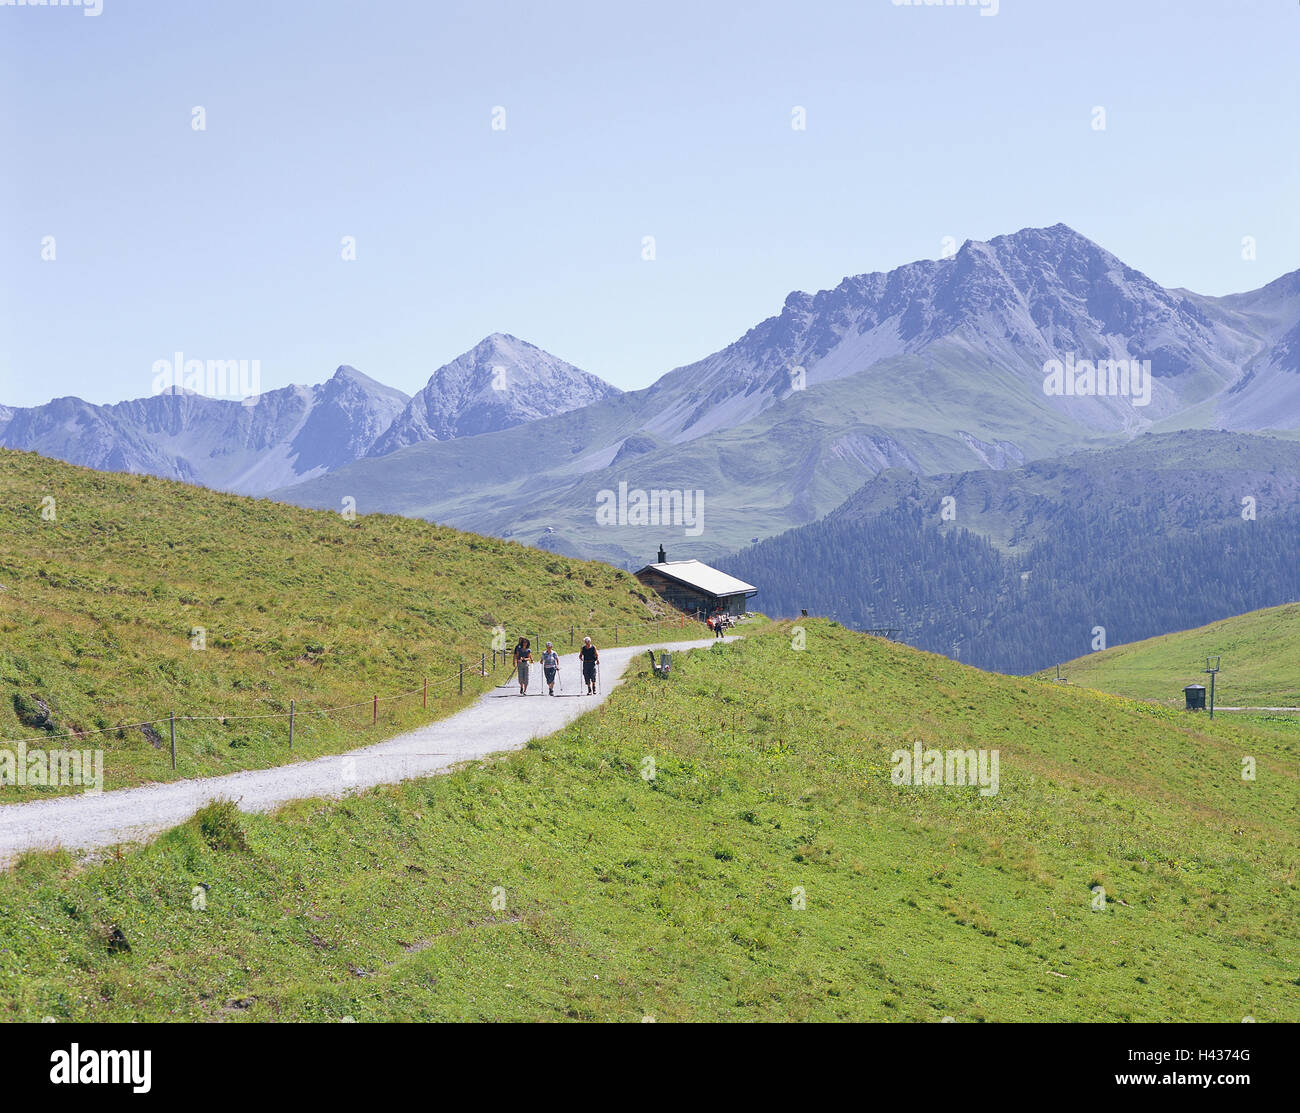 Switzerland, Arosa, mountain landscape, Arlenwaldweg, wanderer, Graubuenden, mountains, alp, alpine hut, footpath, Stock Photo